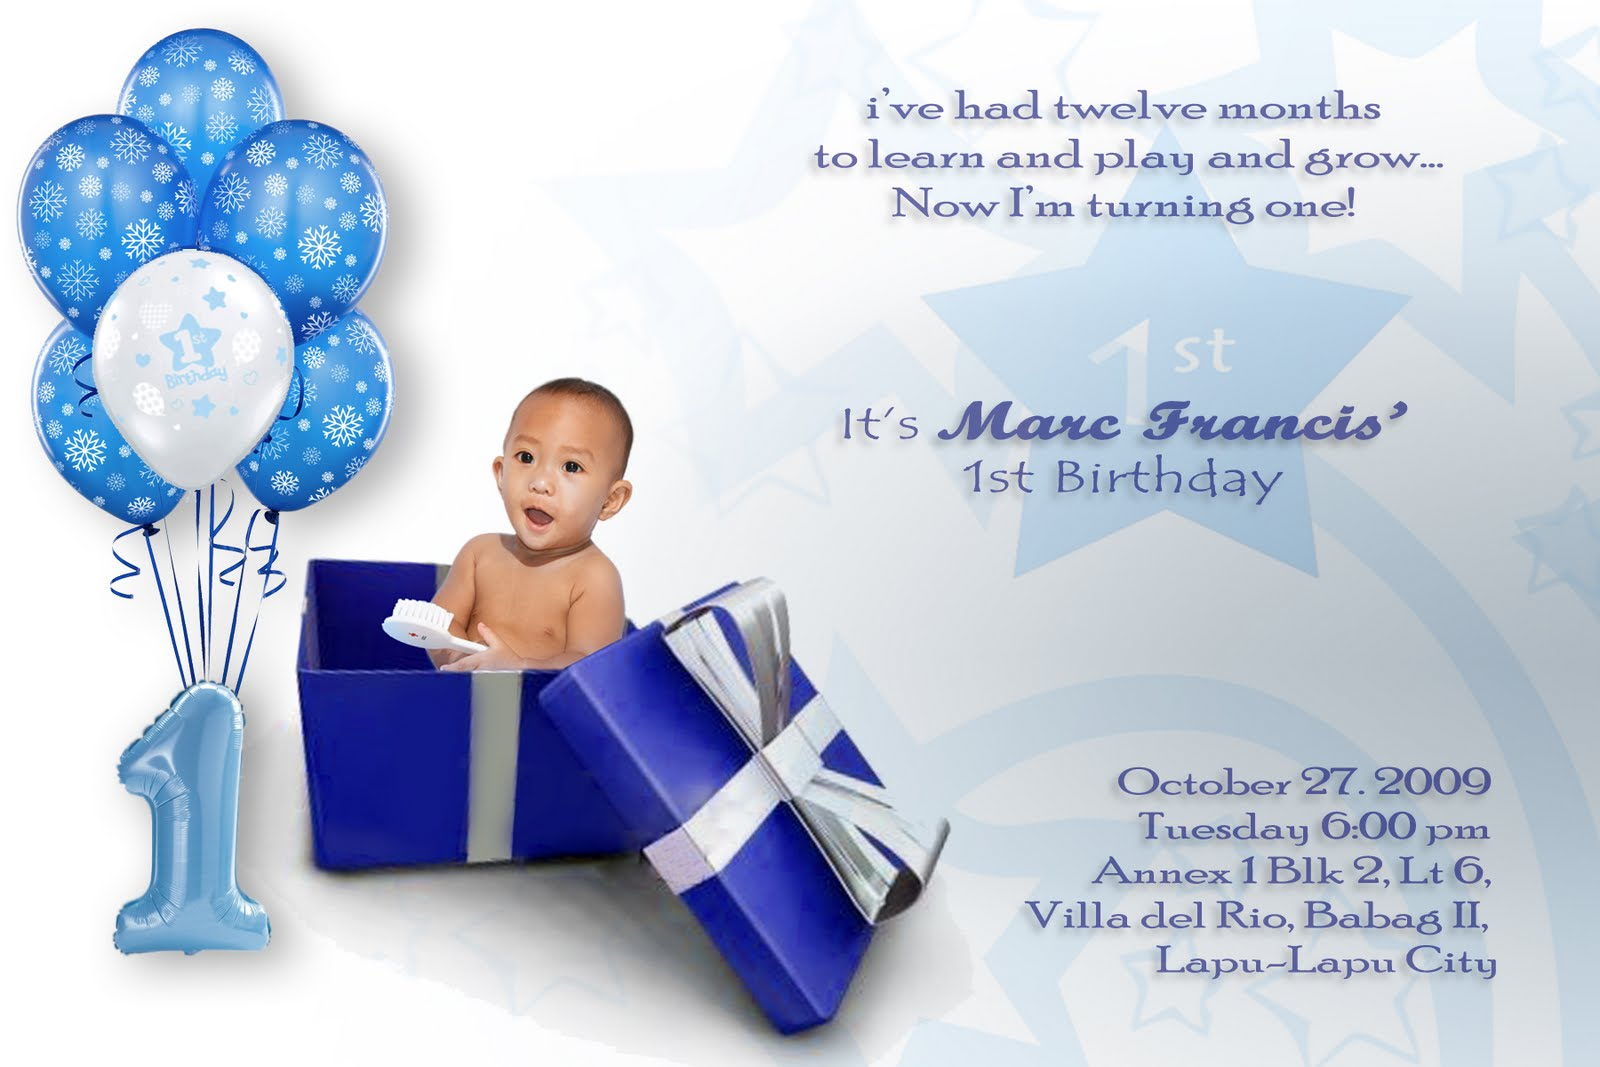 Balloon And Gift Baby Boy First Birthday Invitation Wording Ideas - 1st birthday invitation wording by a baby